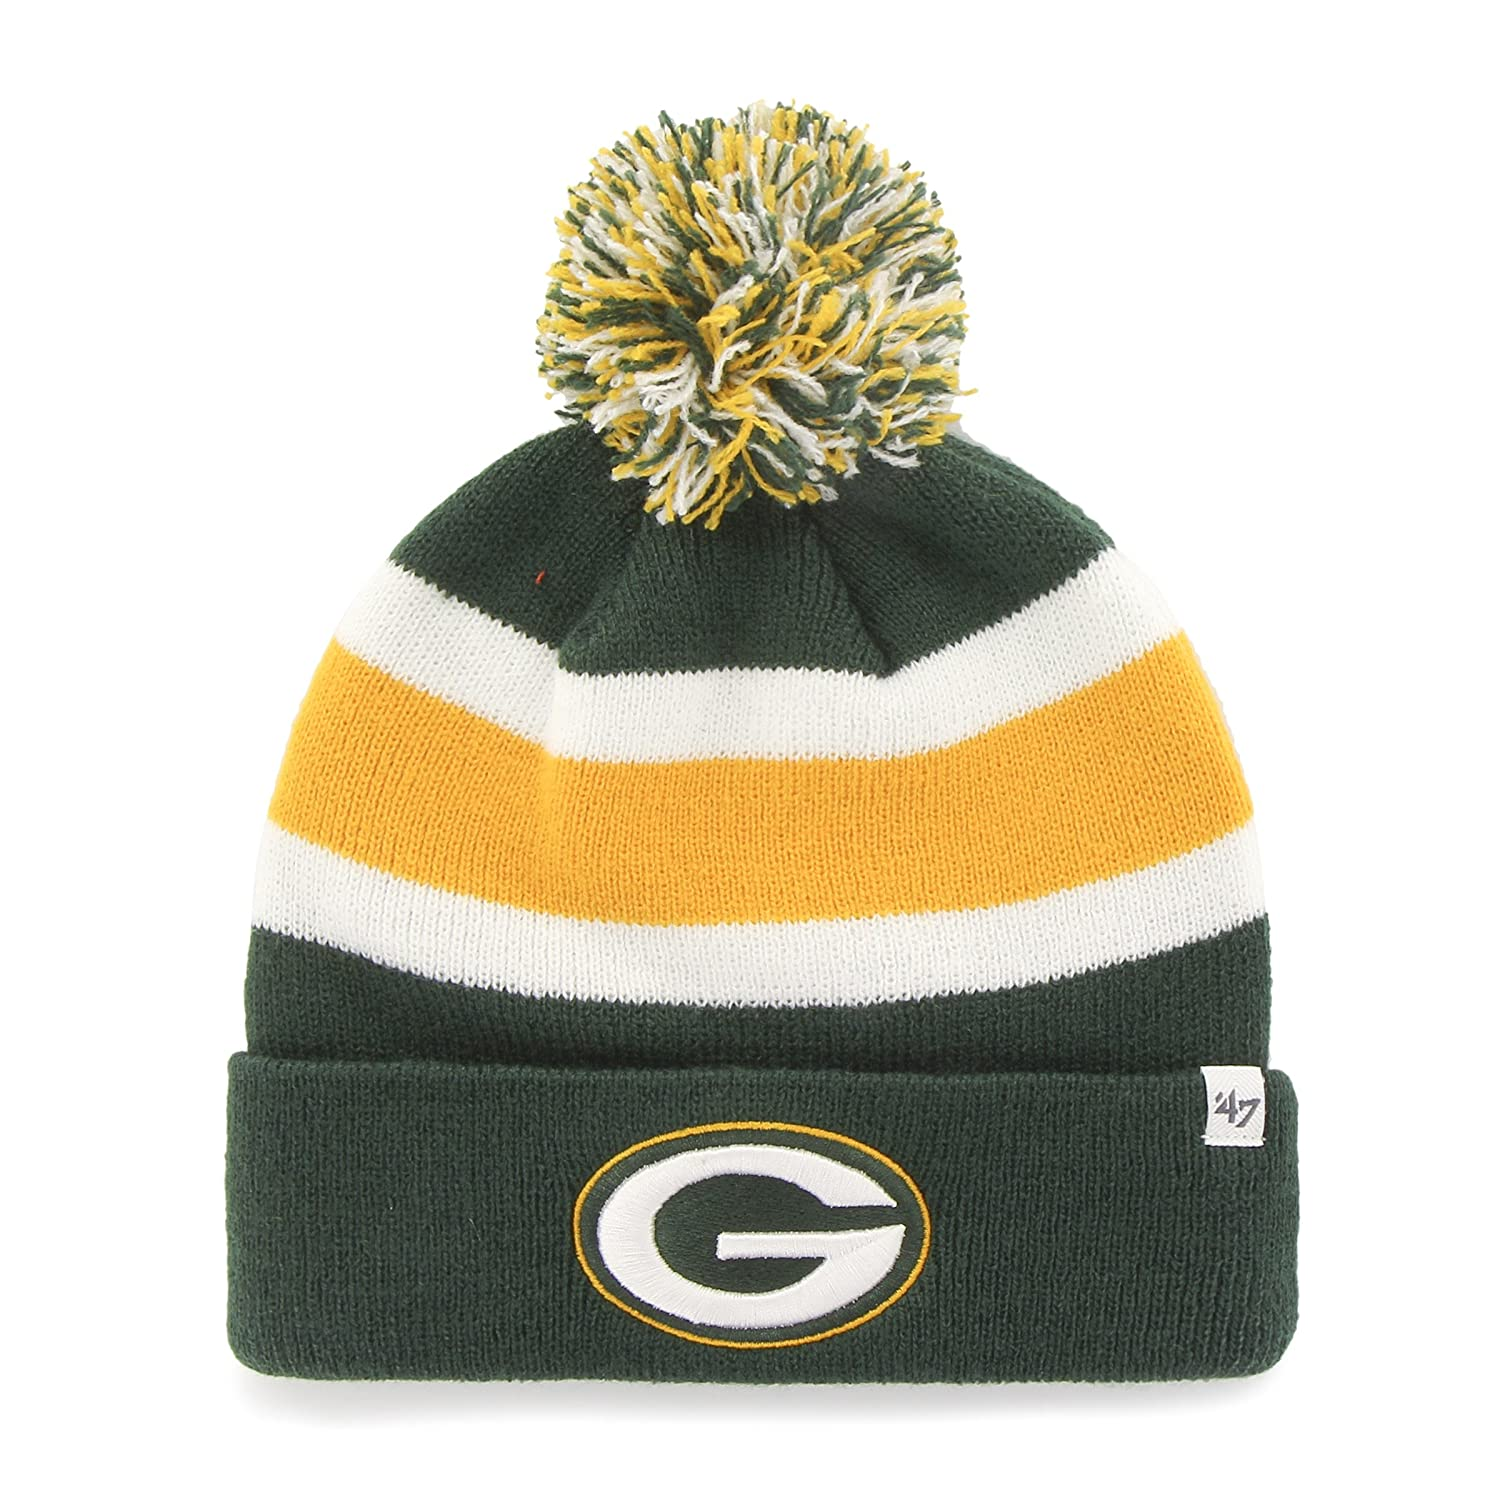 2d390333ce3bc3 Amazon.com : '47 Green Bay Packers Green Cuff Breakaway Beanie Hat with Pom  - NFL Cuffed Winter Knit Toque Cap : Clothing